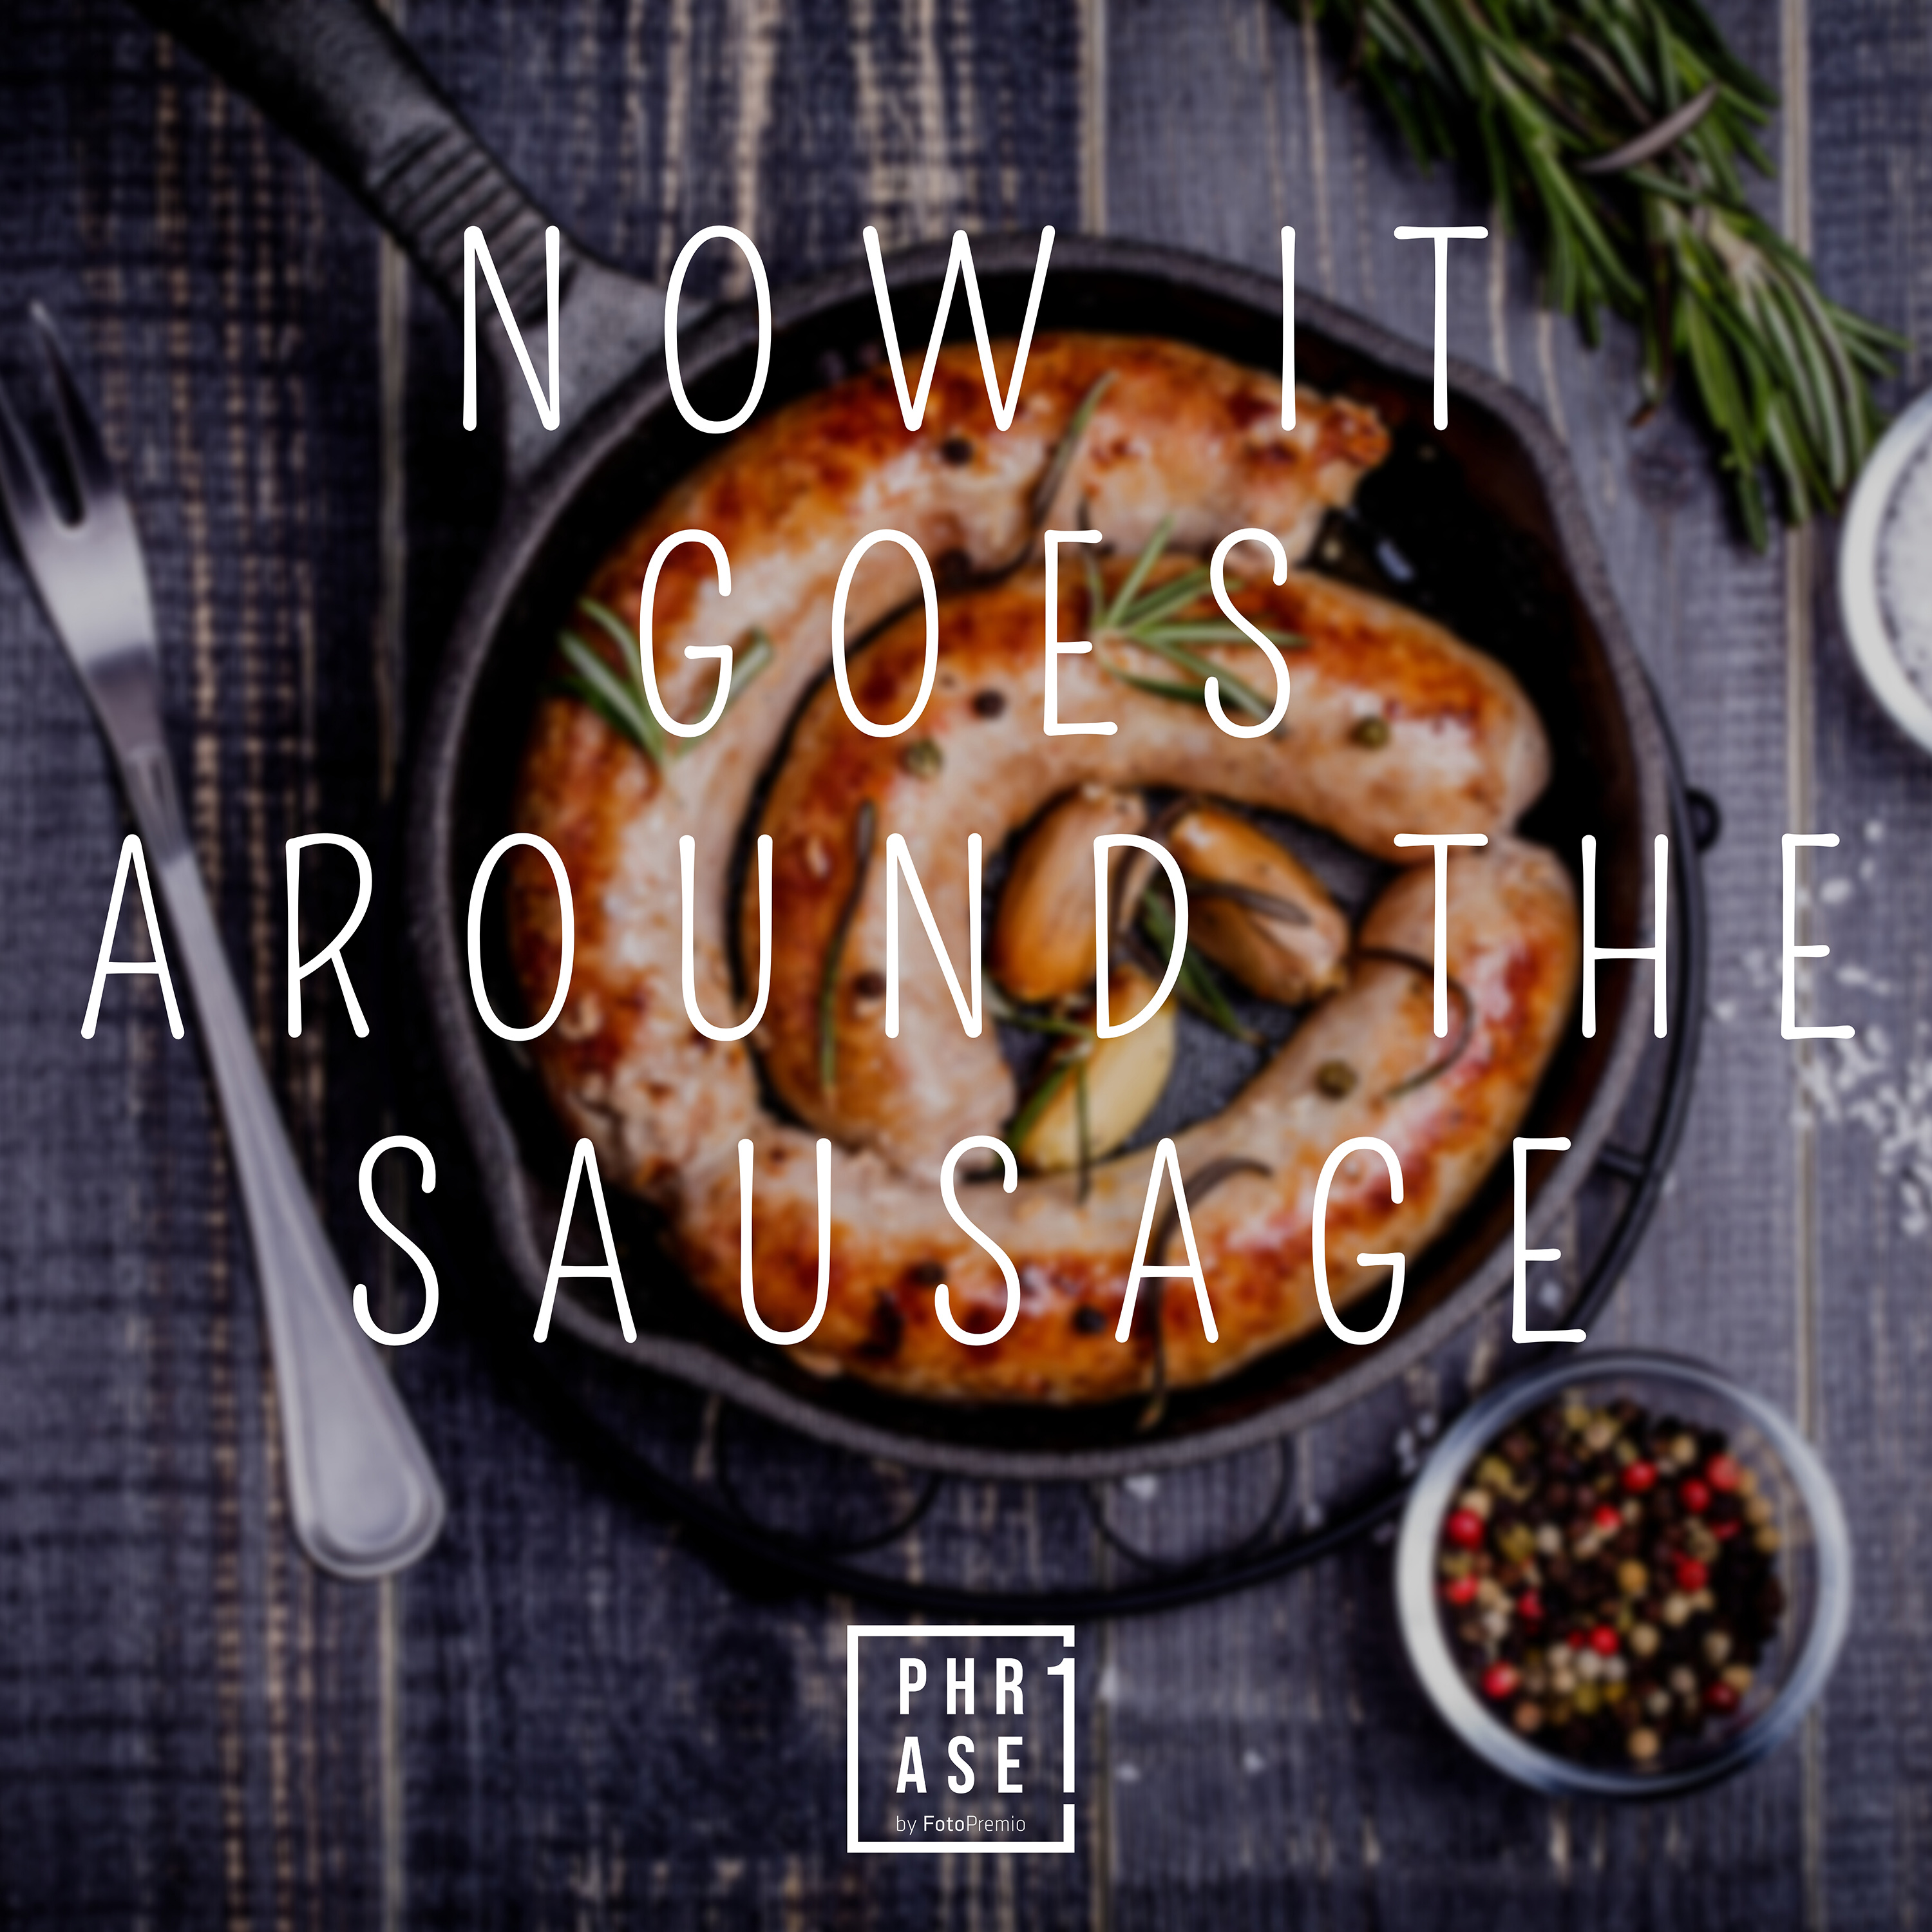 Now it goes around the sausage